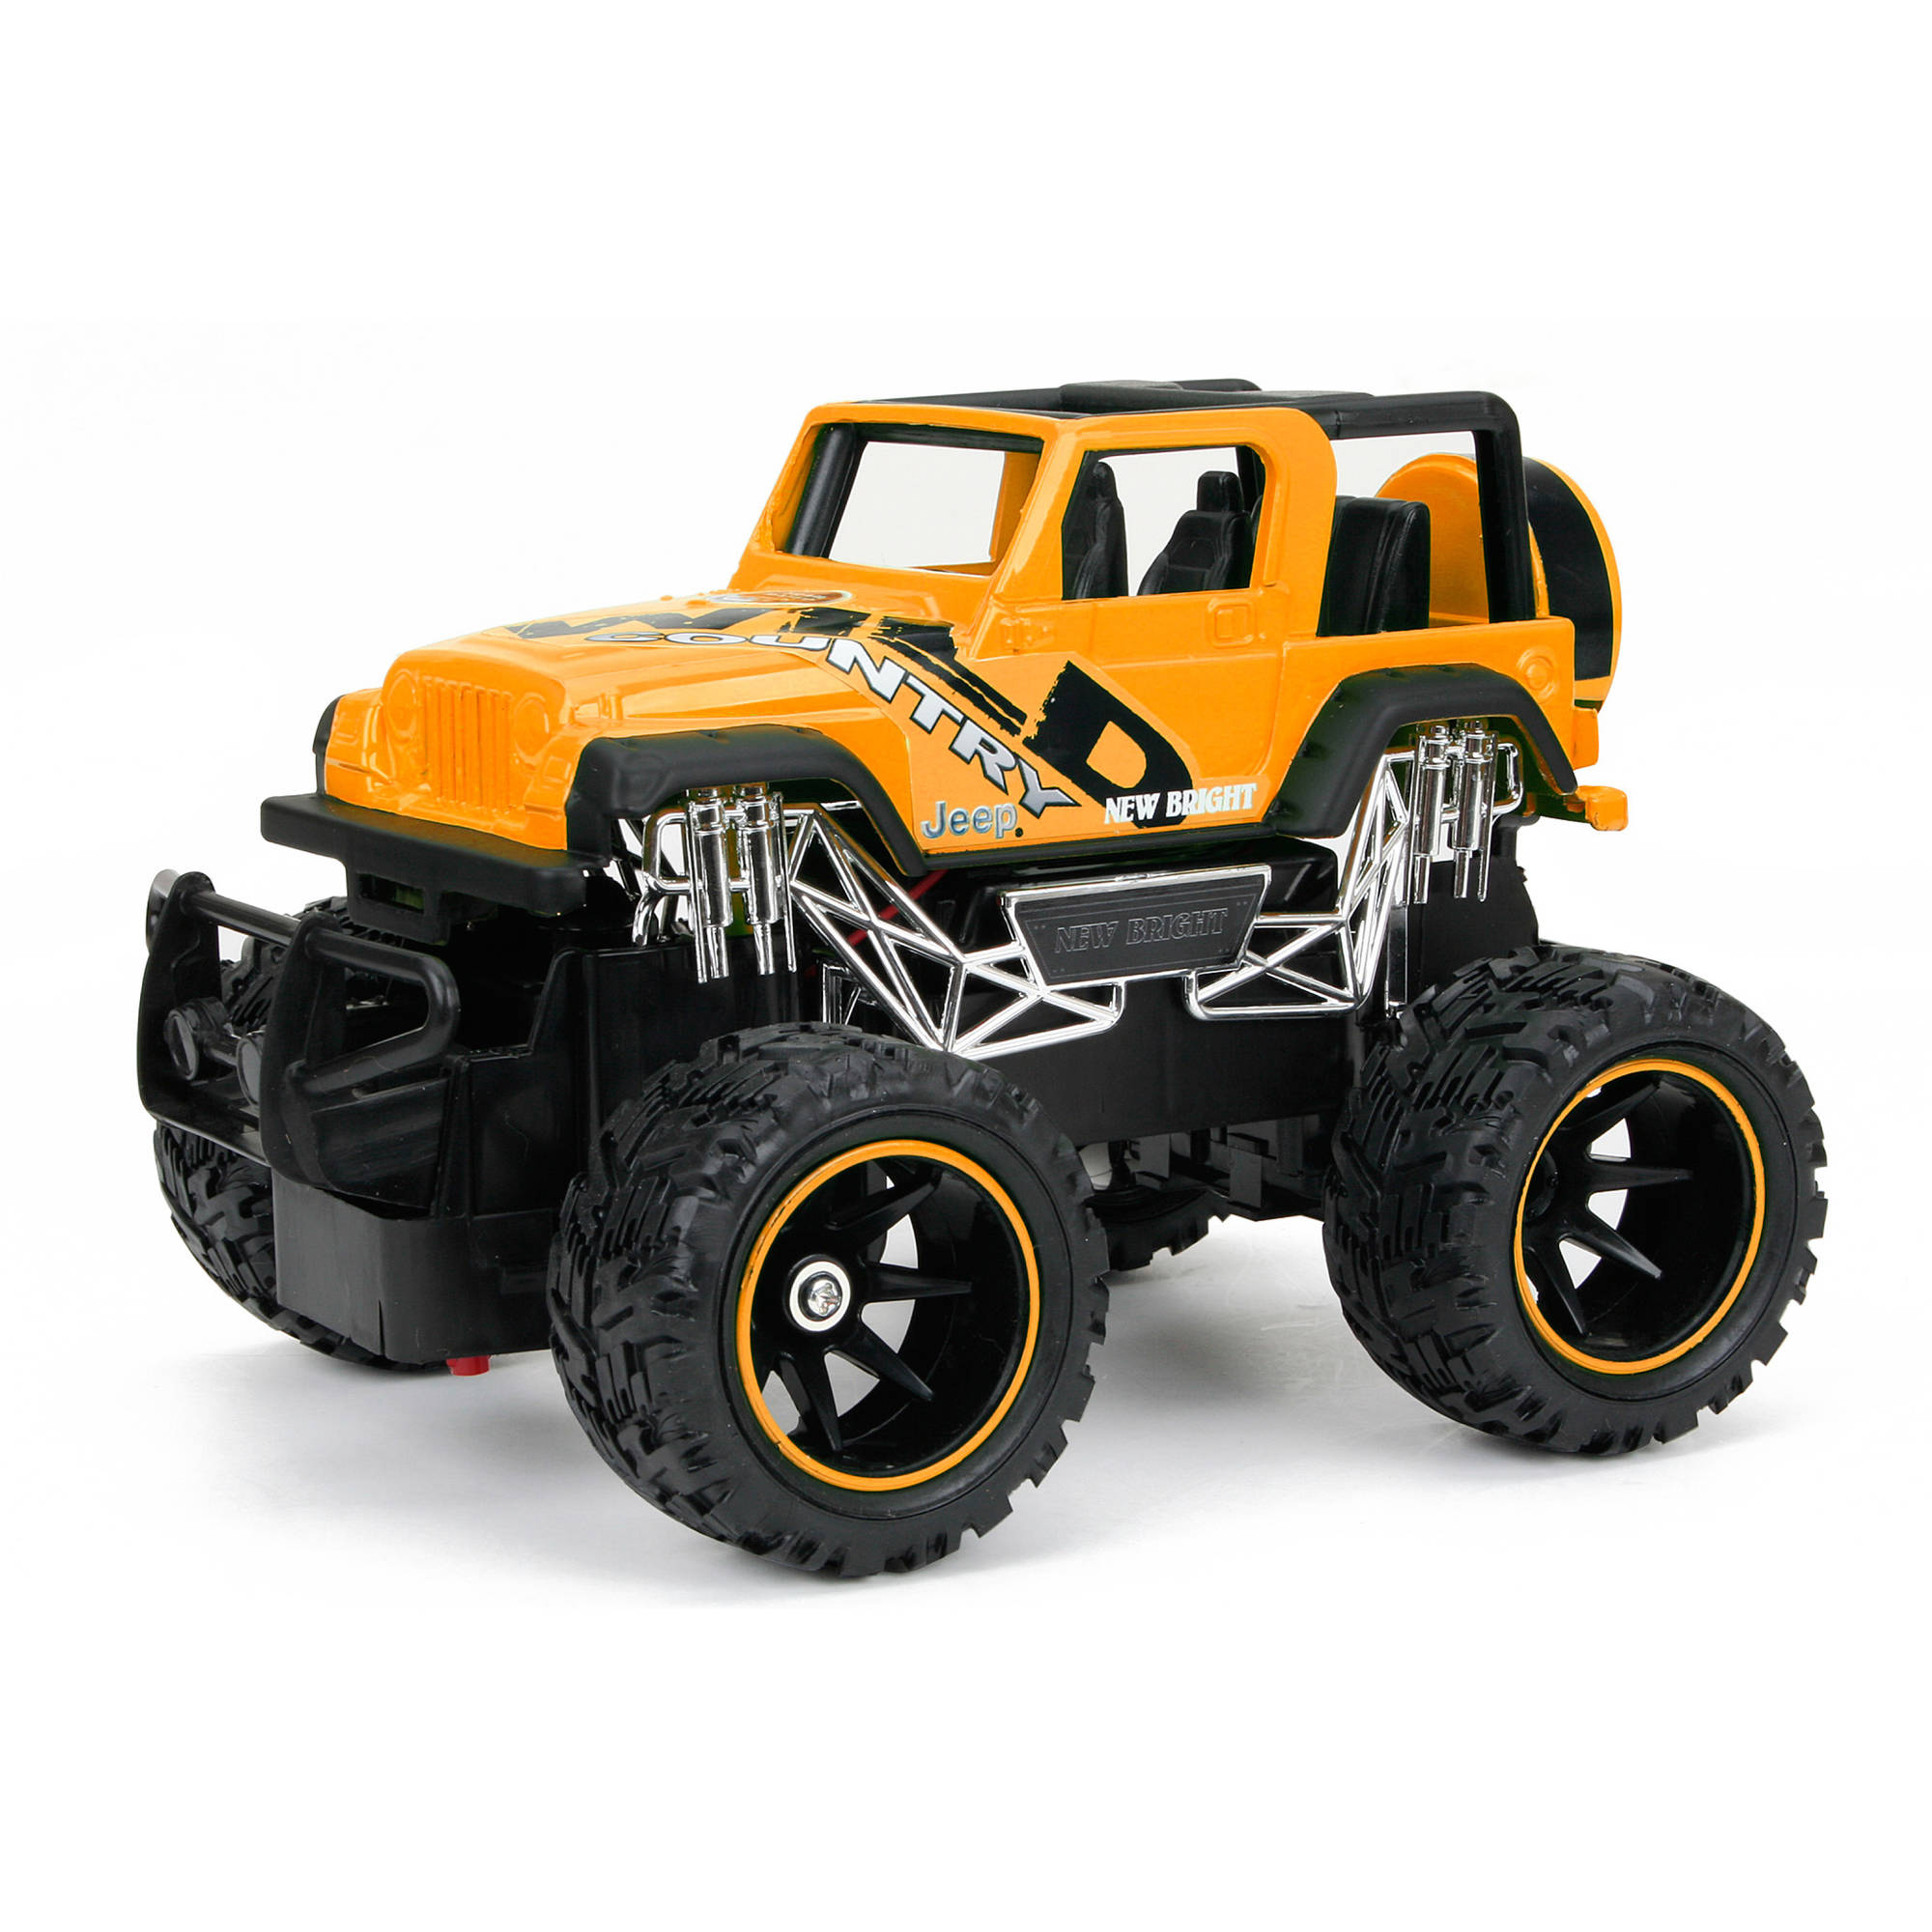 1:24 R/C Jeep Wrangler, Yellow